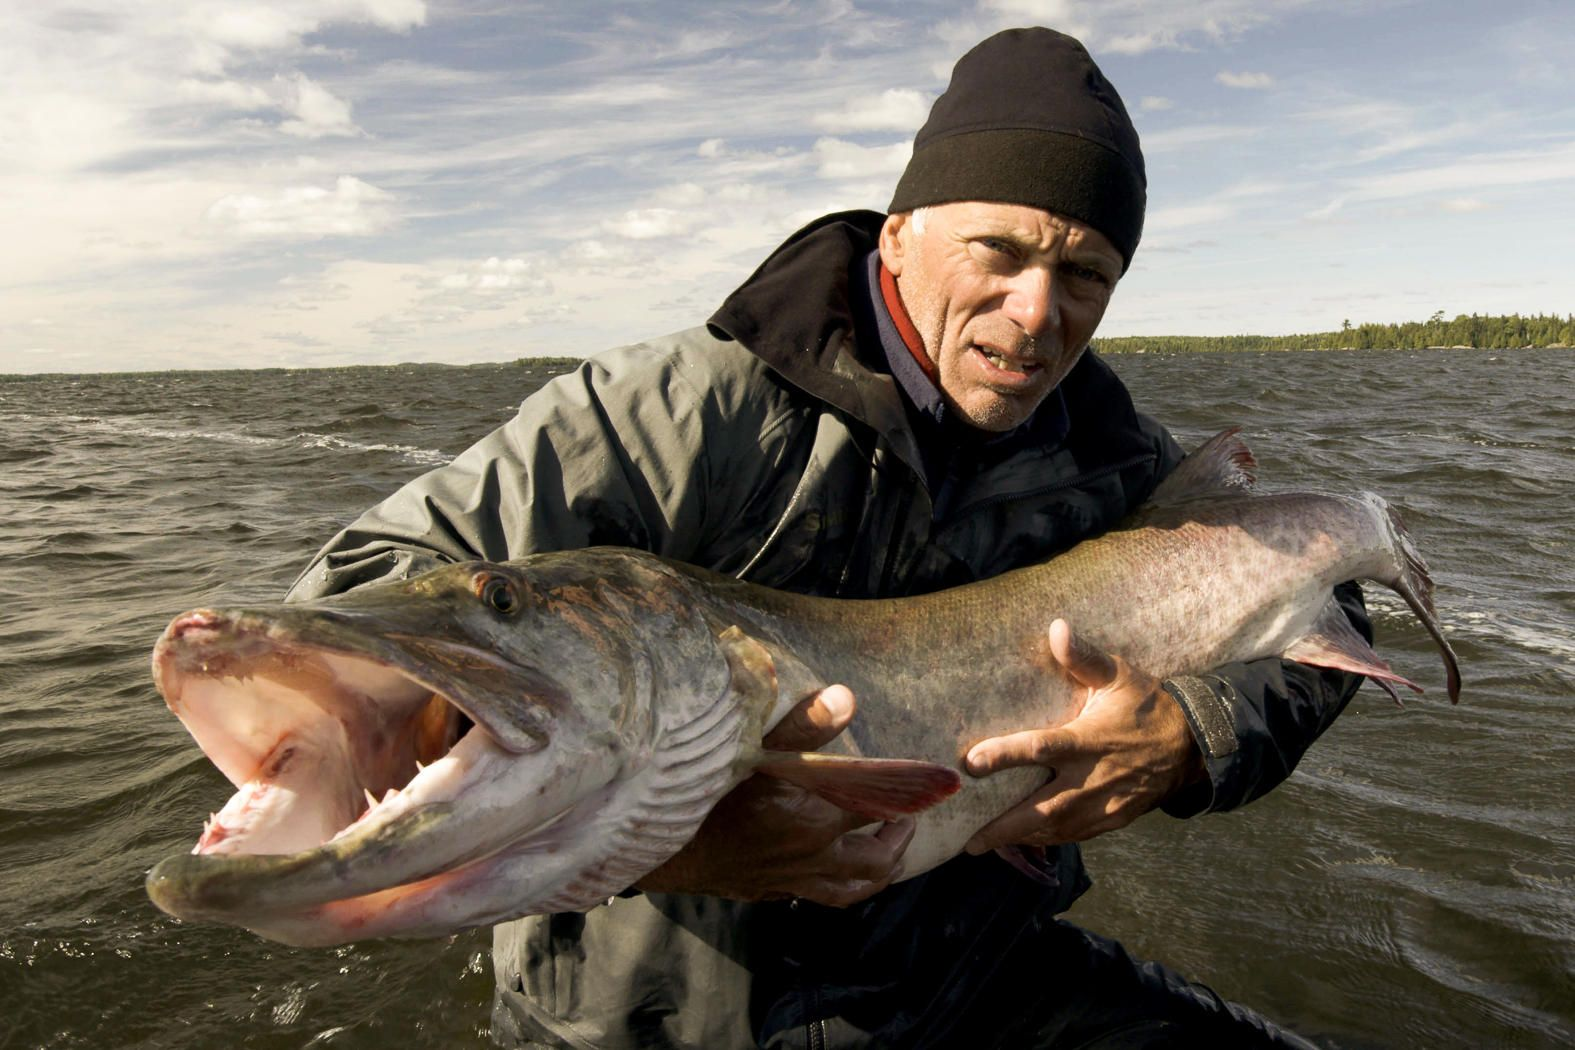 jeremy wade holding the musky catch at spirit rock in